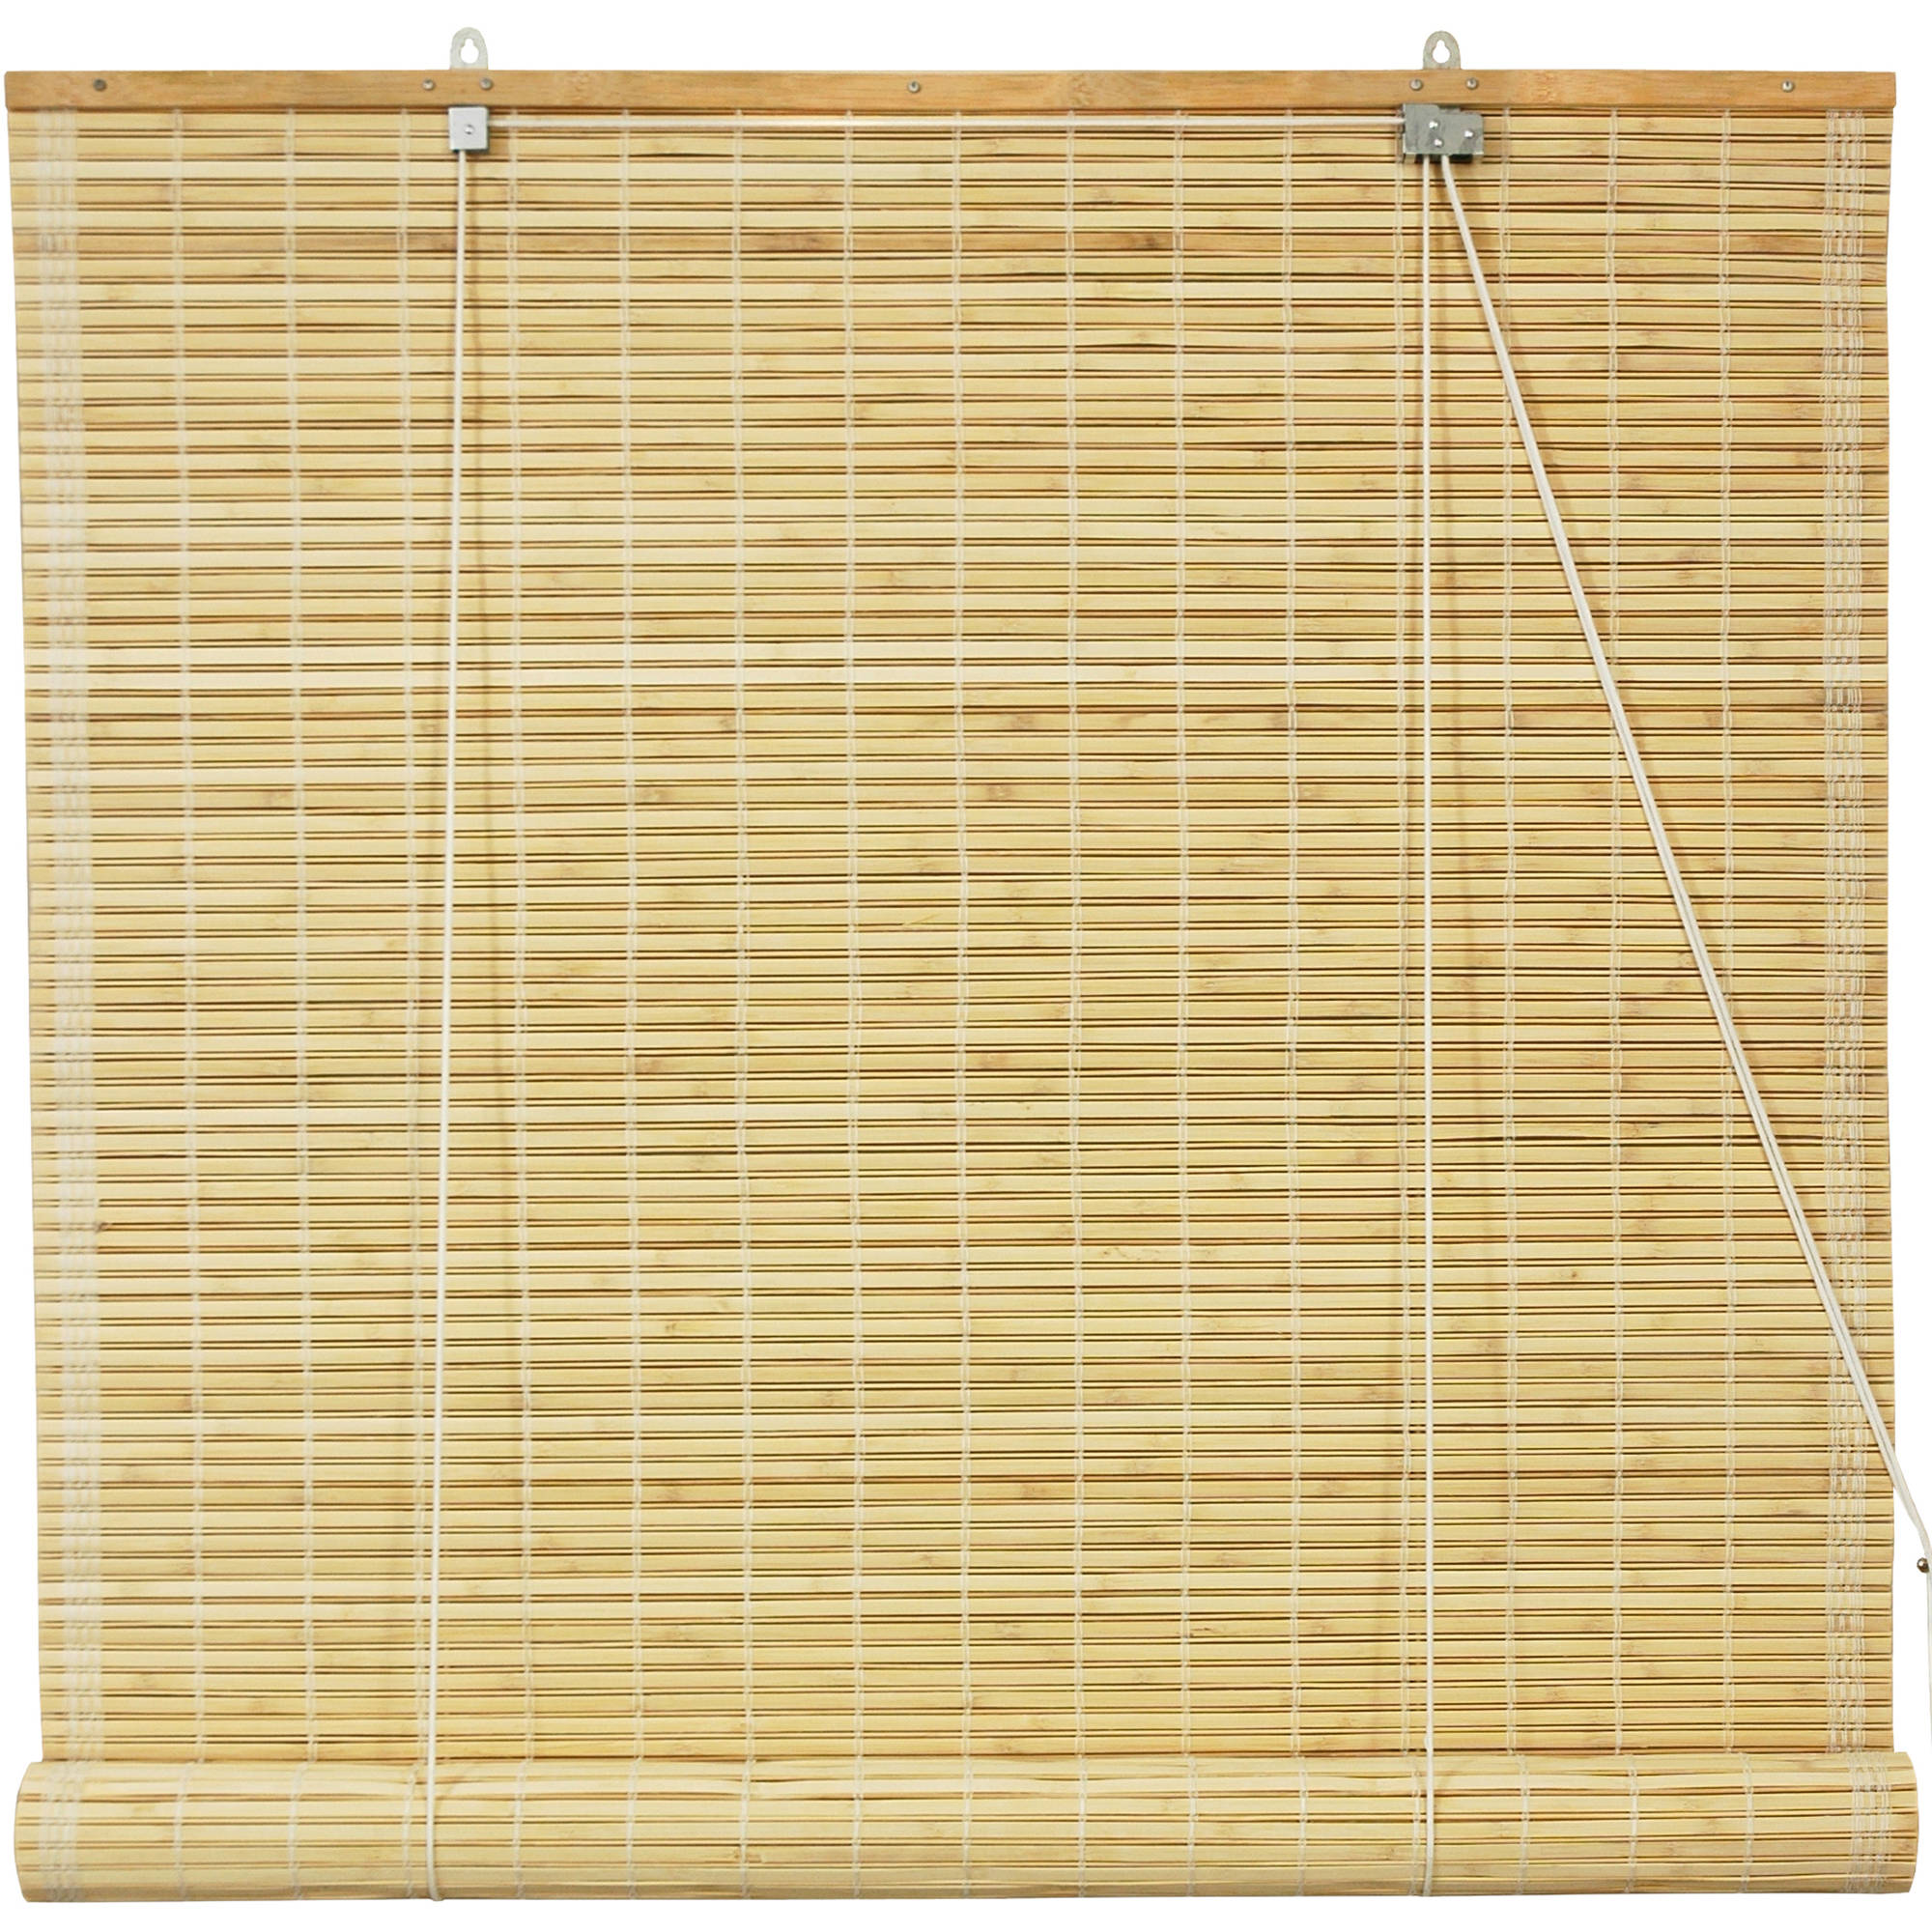 Bamboo Roll Up Blinds Natural 72 x 72 Walmartcom